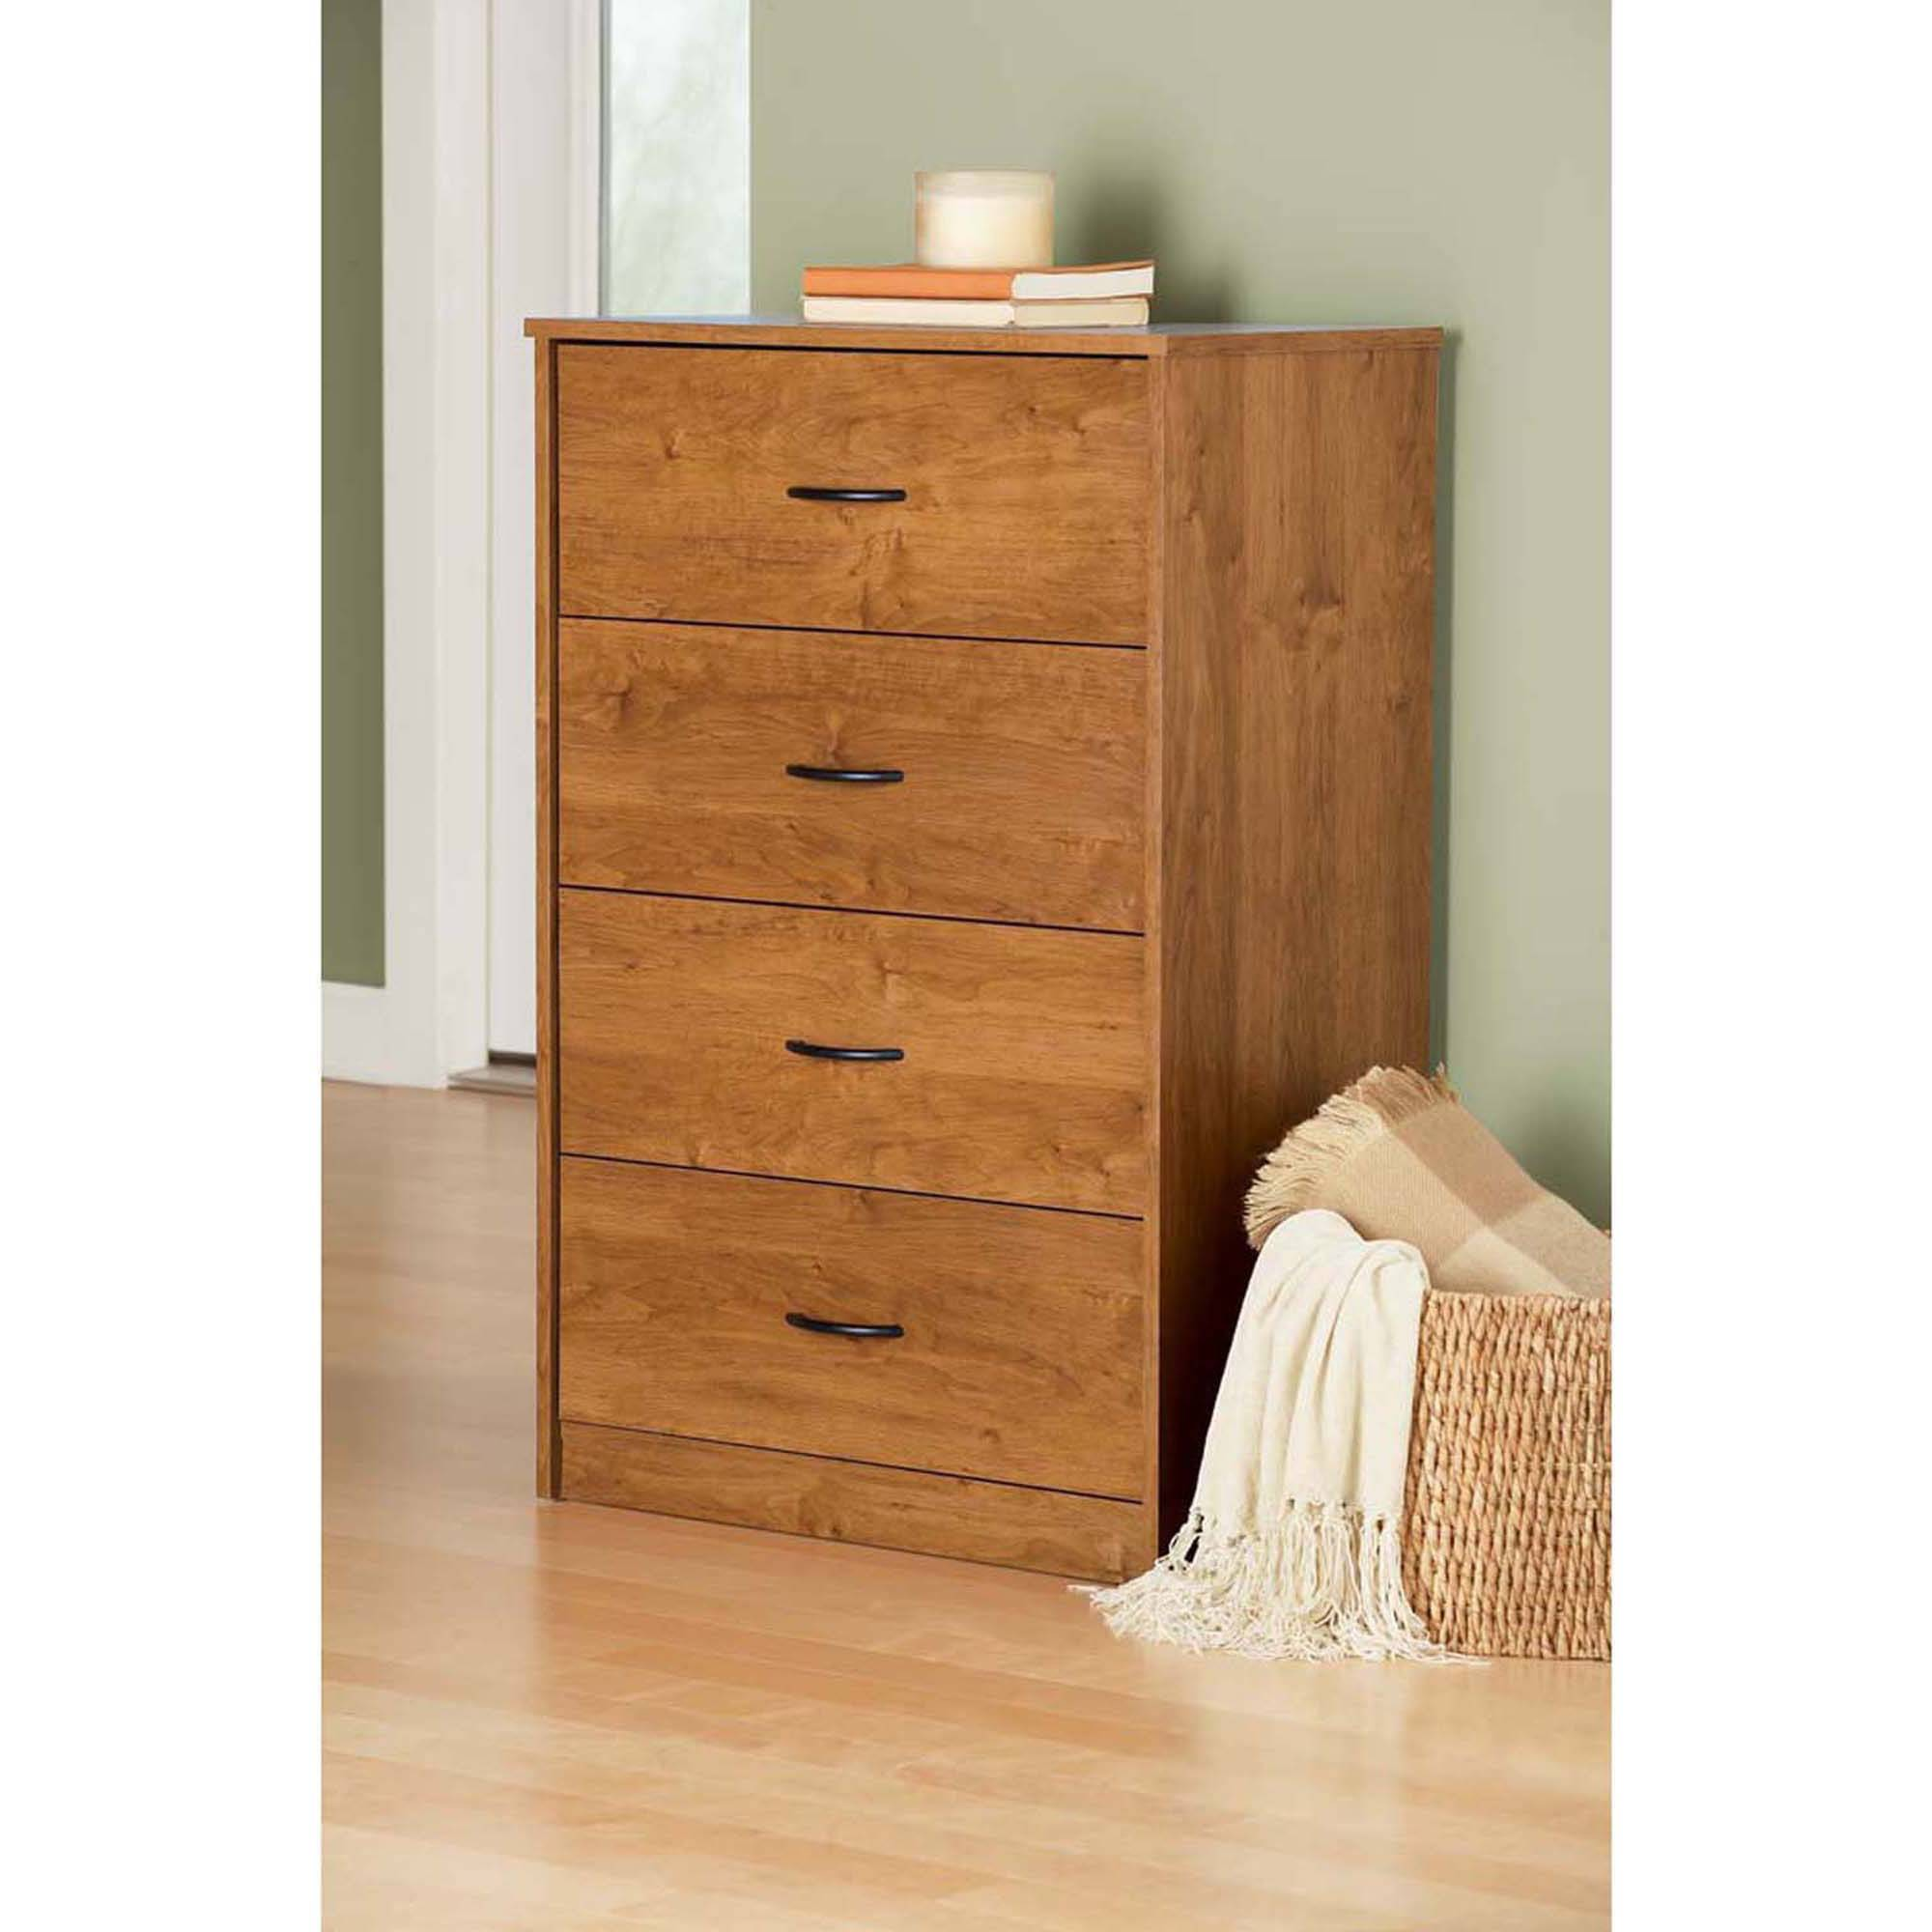 Mainstays 4-Drawer Chest, Alder - Walmart.com